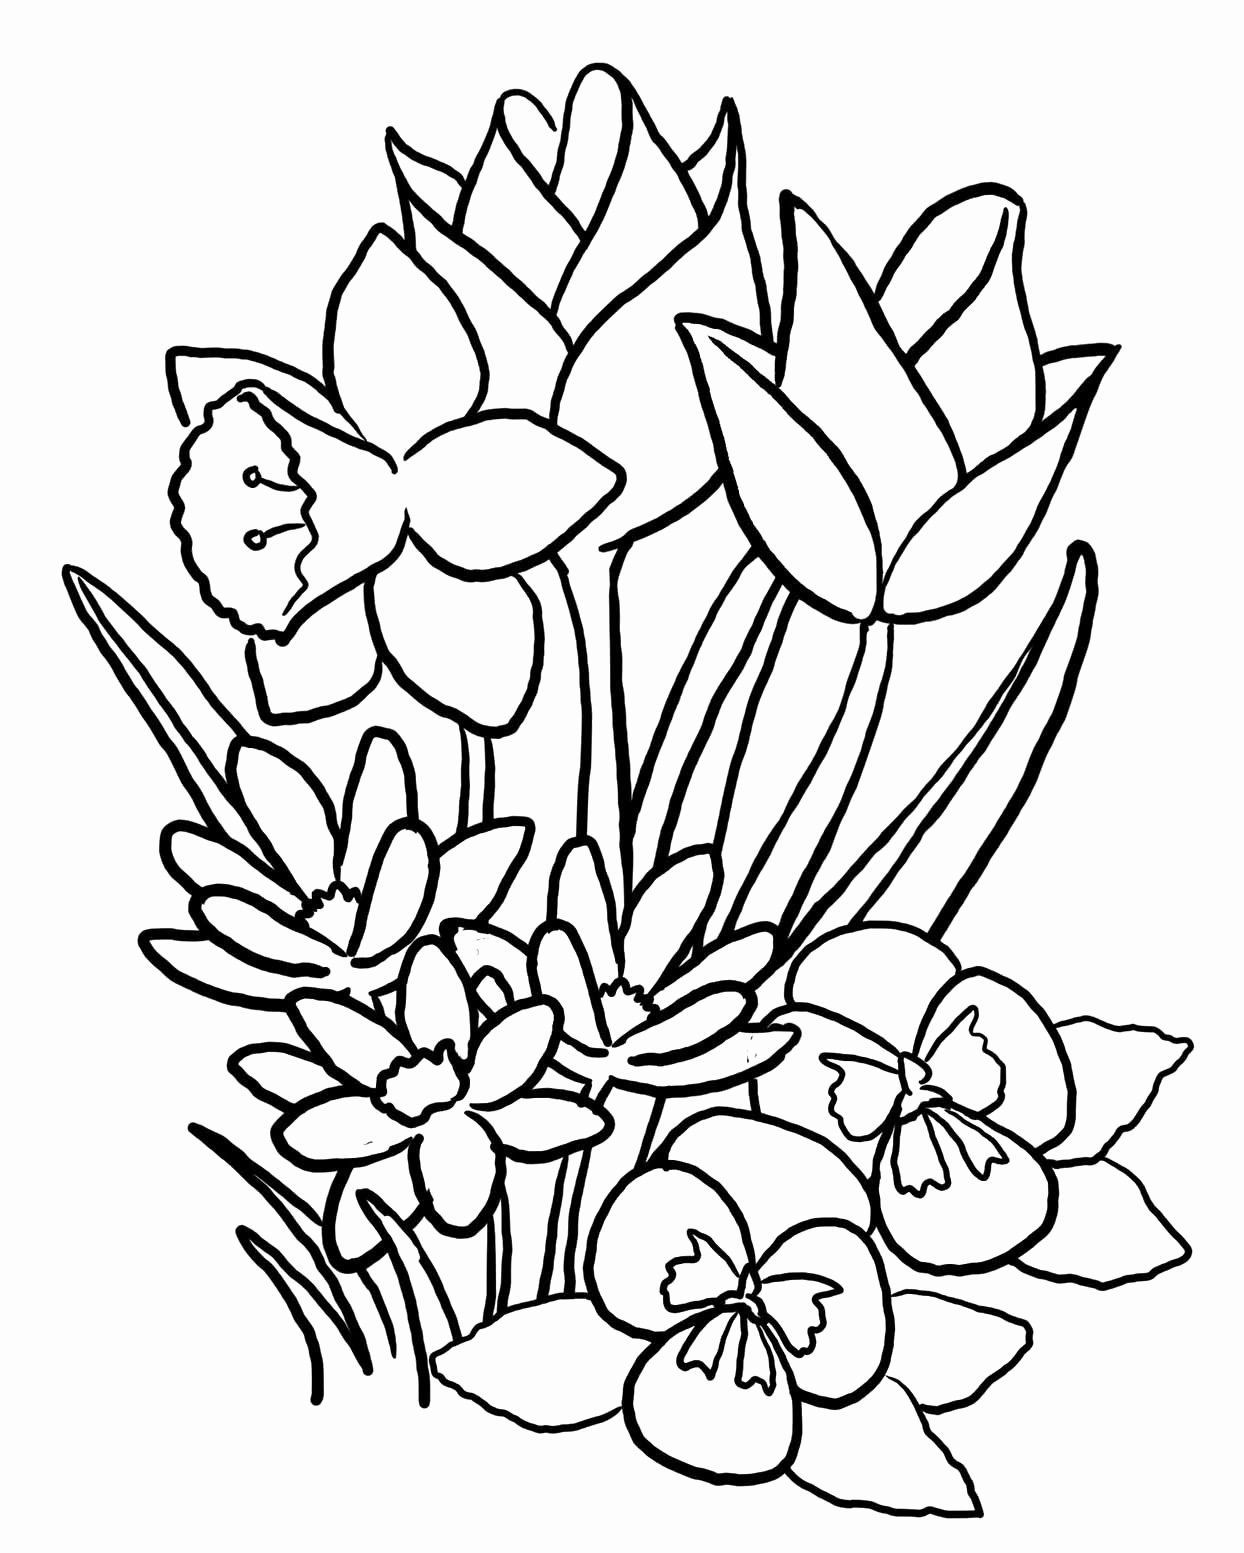 Cute Spring Coloring Pages Awesome Cute Spring Flower Coloring Pages Coloring Page In 2020 Printable Flower Coloring Pages Mandala Coloring Pages Spring Coloring Pages